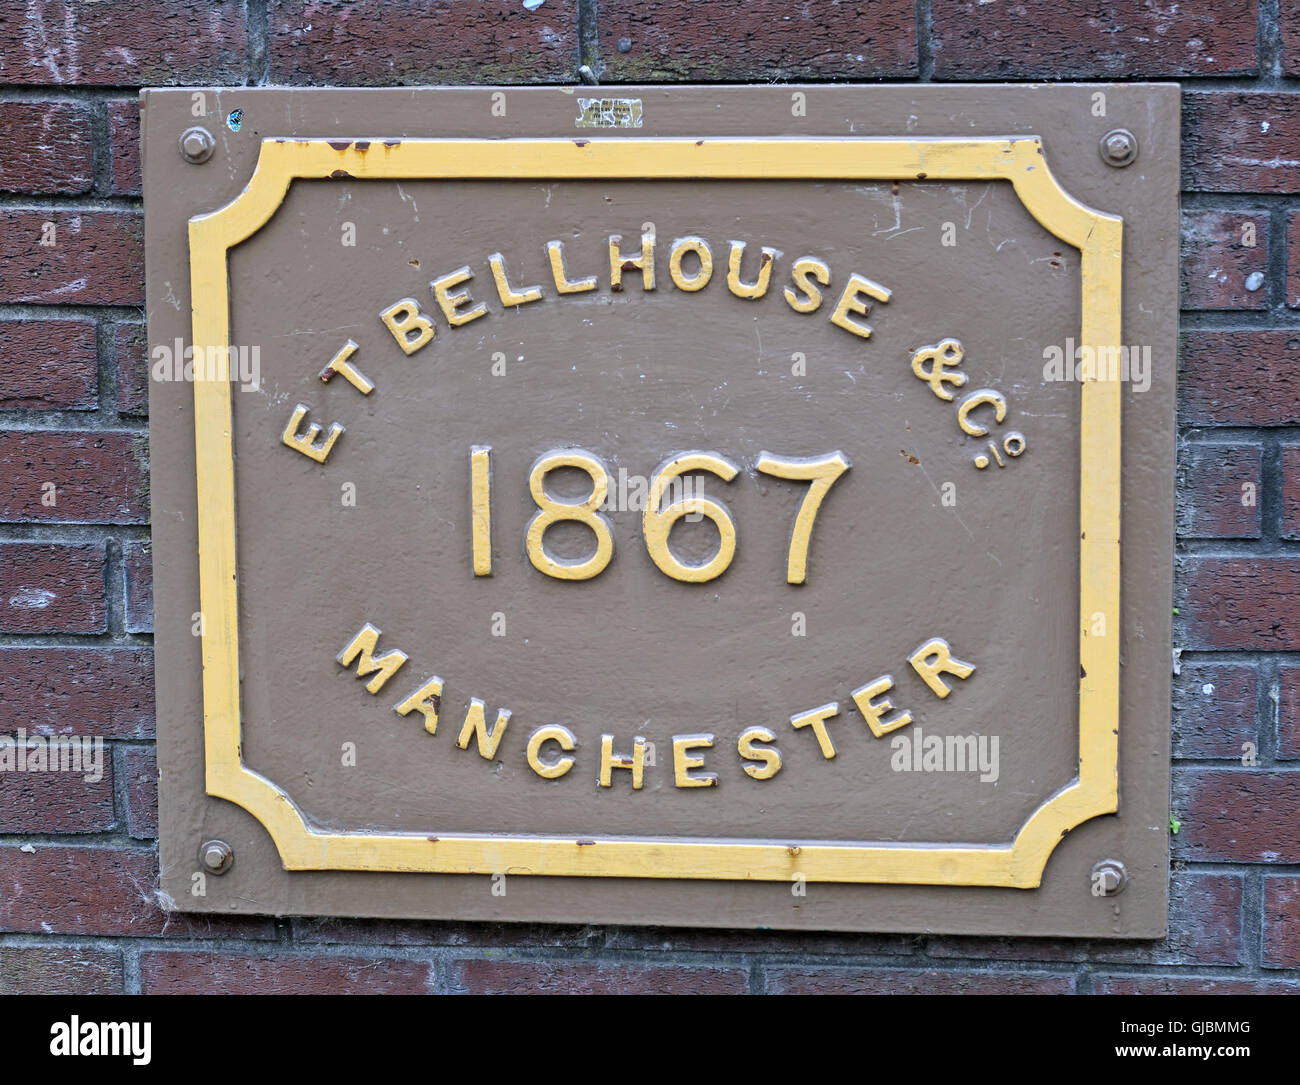 ET Bellhouse & Co 1867 Manchester plate on a bridge, Princess St, UK - Stock Image